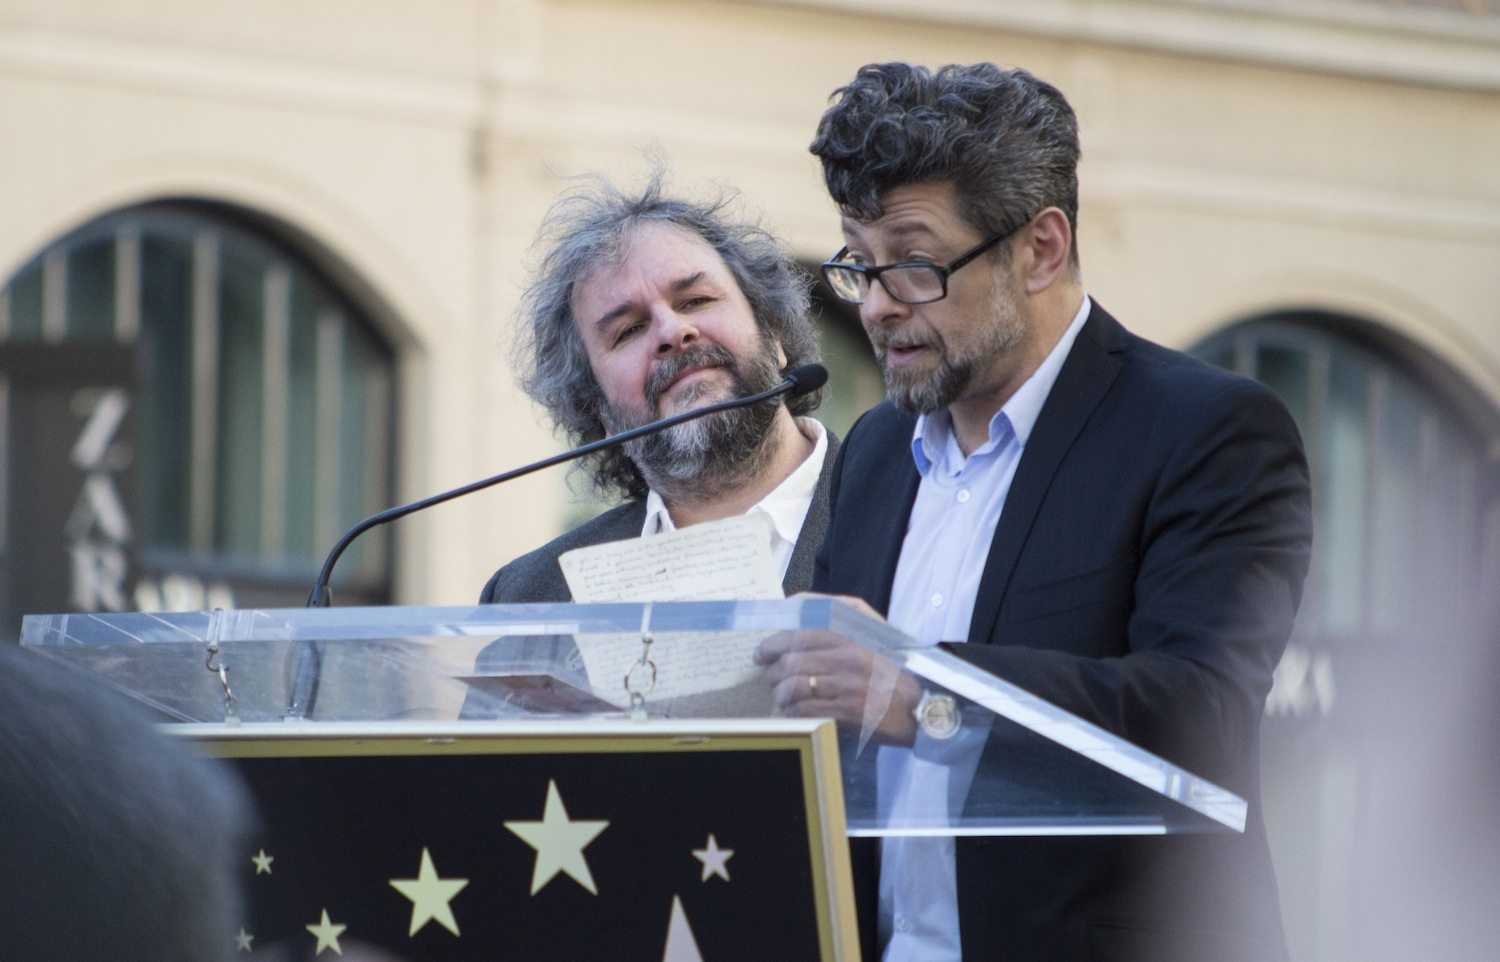 Andy Serkis giving a speech.